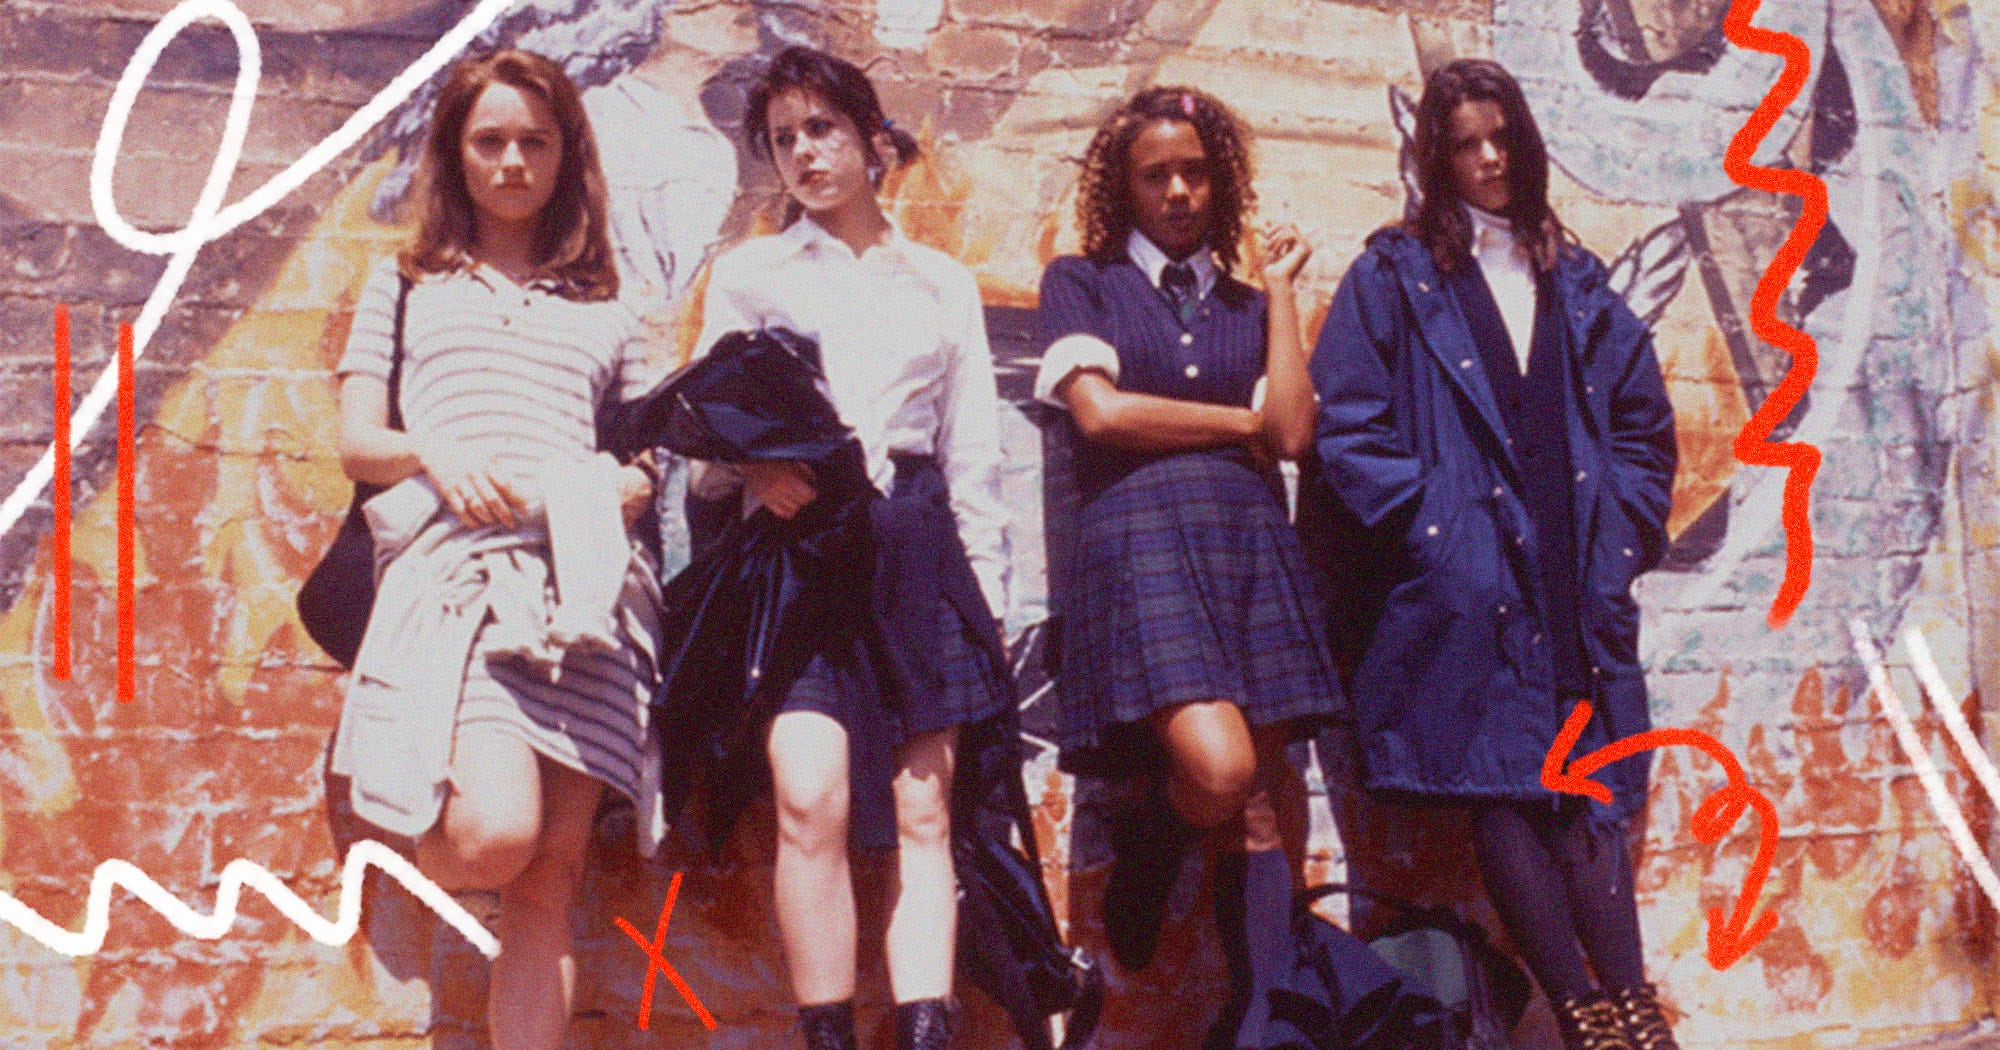 The Craft Is A Controversial Witch Movie Meant For 2018